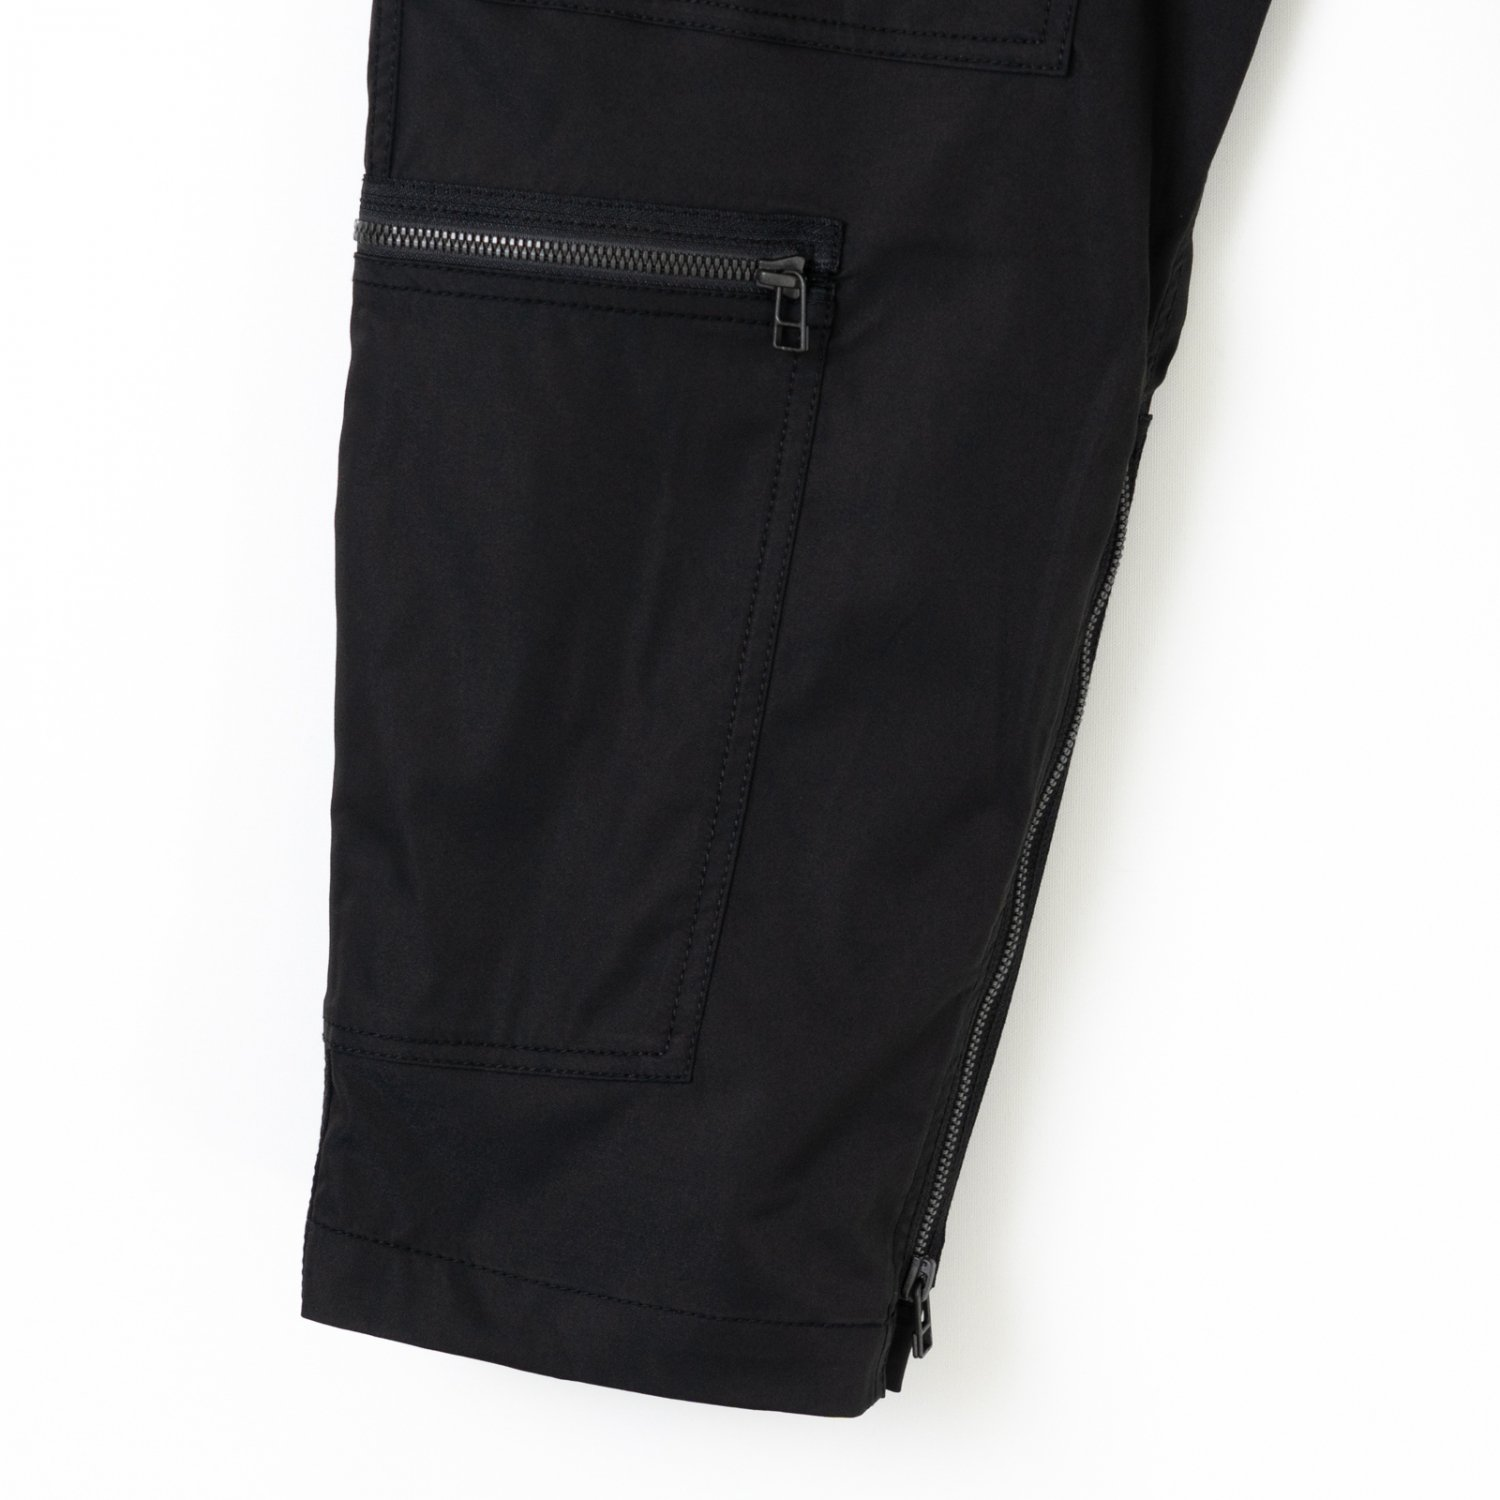 DAIWA PIER39 * TECH PARACHUTE PANTS * Black